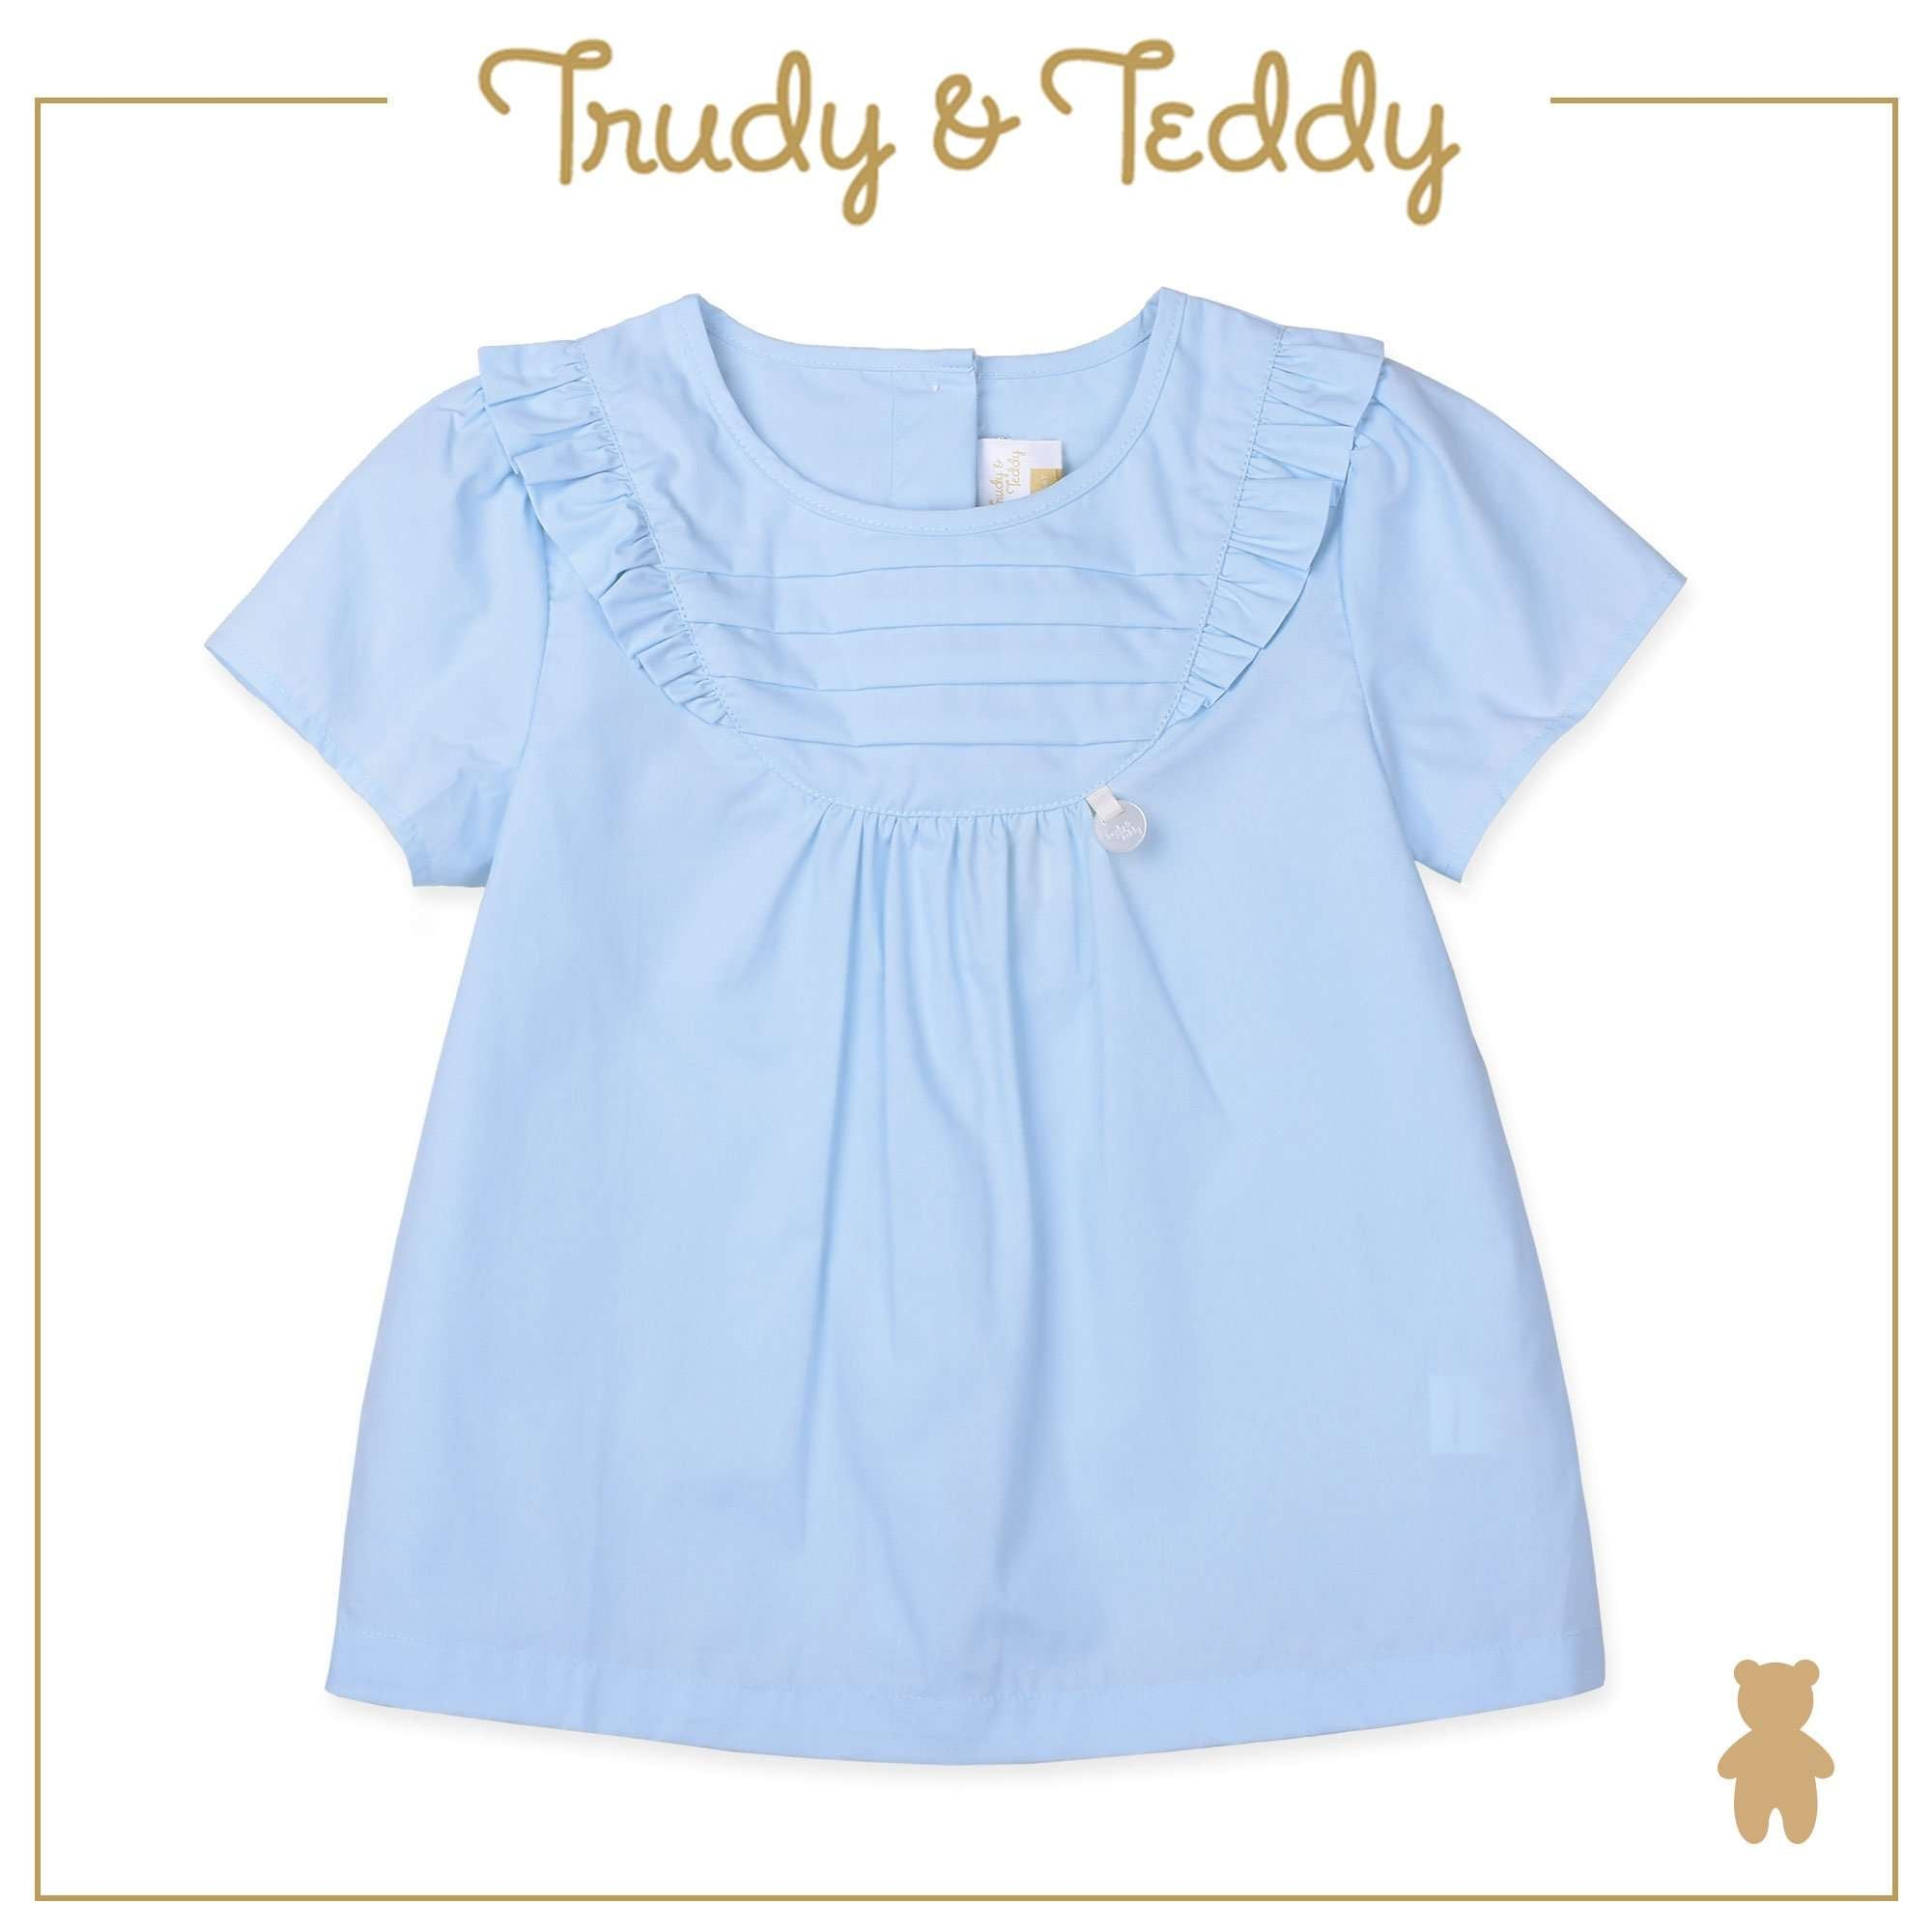 Trudy & Teddy Baby to Kid Girl Short Sleeve Blouse - Light Blue T924001-1402-L1 : Buy Trudy & Teddy online at CMG.MY